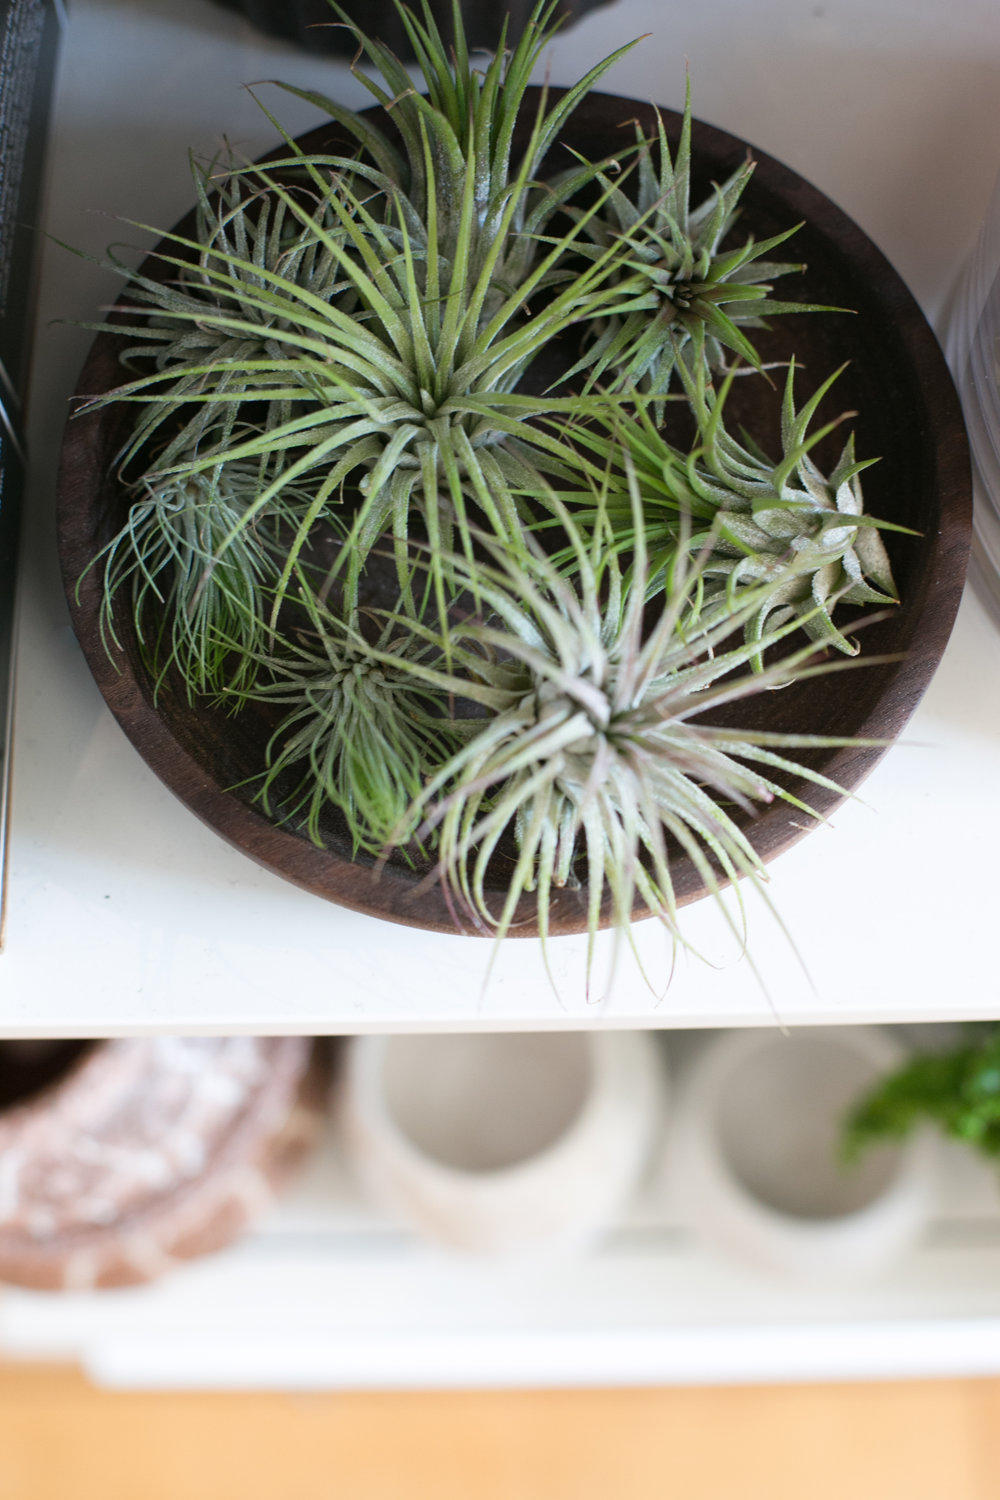 We carry a variety of air plants in various sizes, as well as fun vessels to display them with.